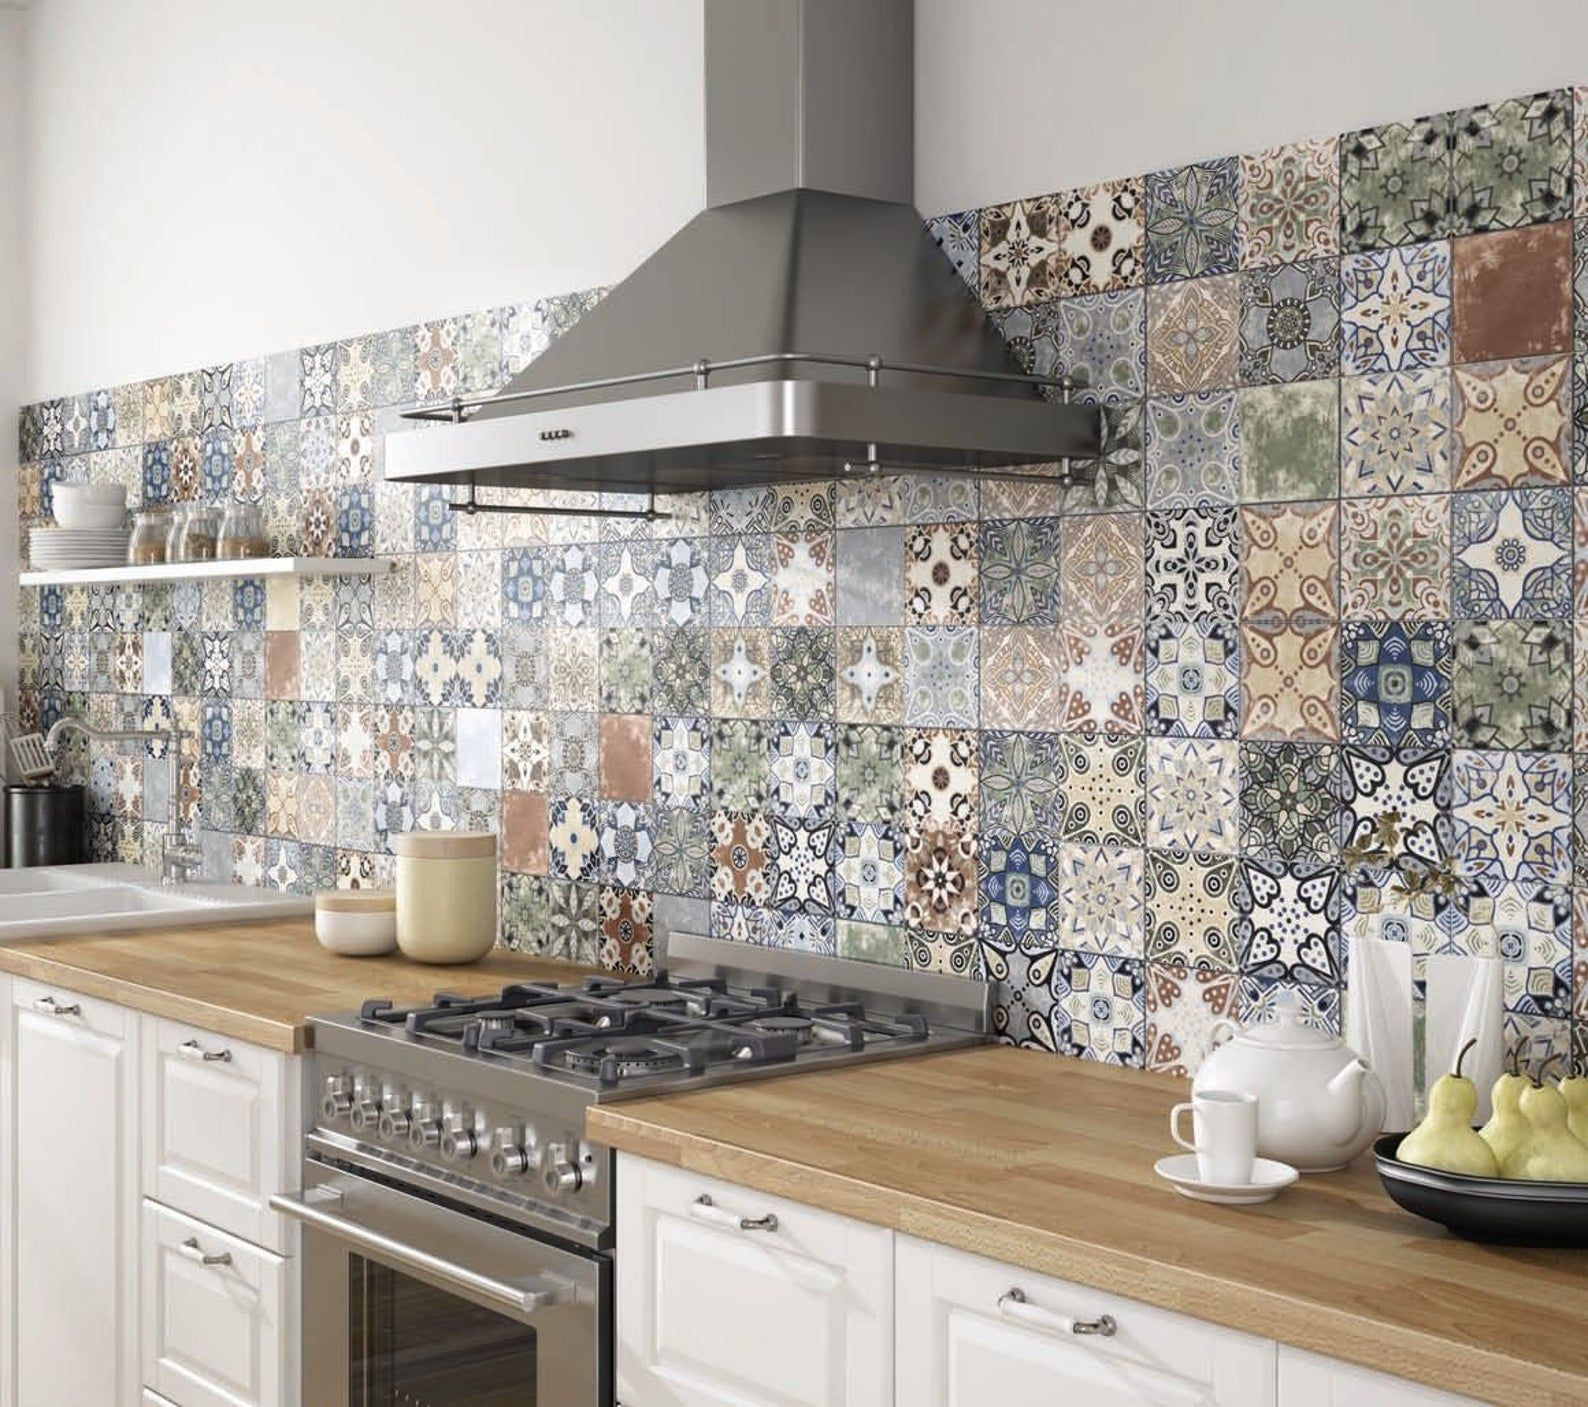 Tile Stickers Vintage Color Tiles For Kitchen Bathroom Backsplash Floor Decals Wall Decal Stair Riser Decal Removable Peel Stick Tiles Kitchen Tiles Kitchen Design Kitchen Remodel